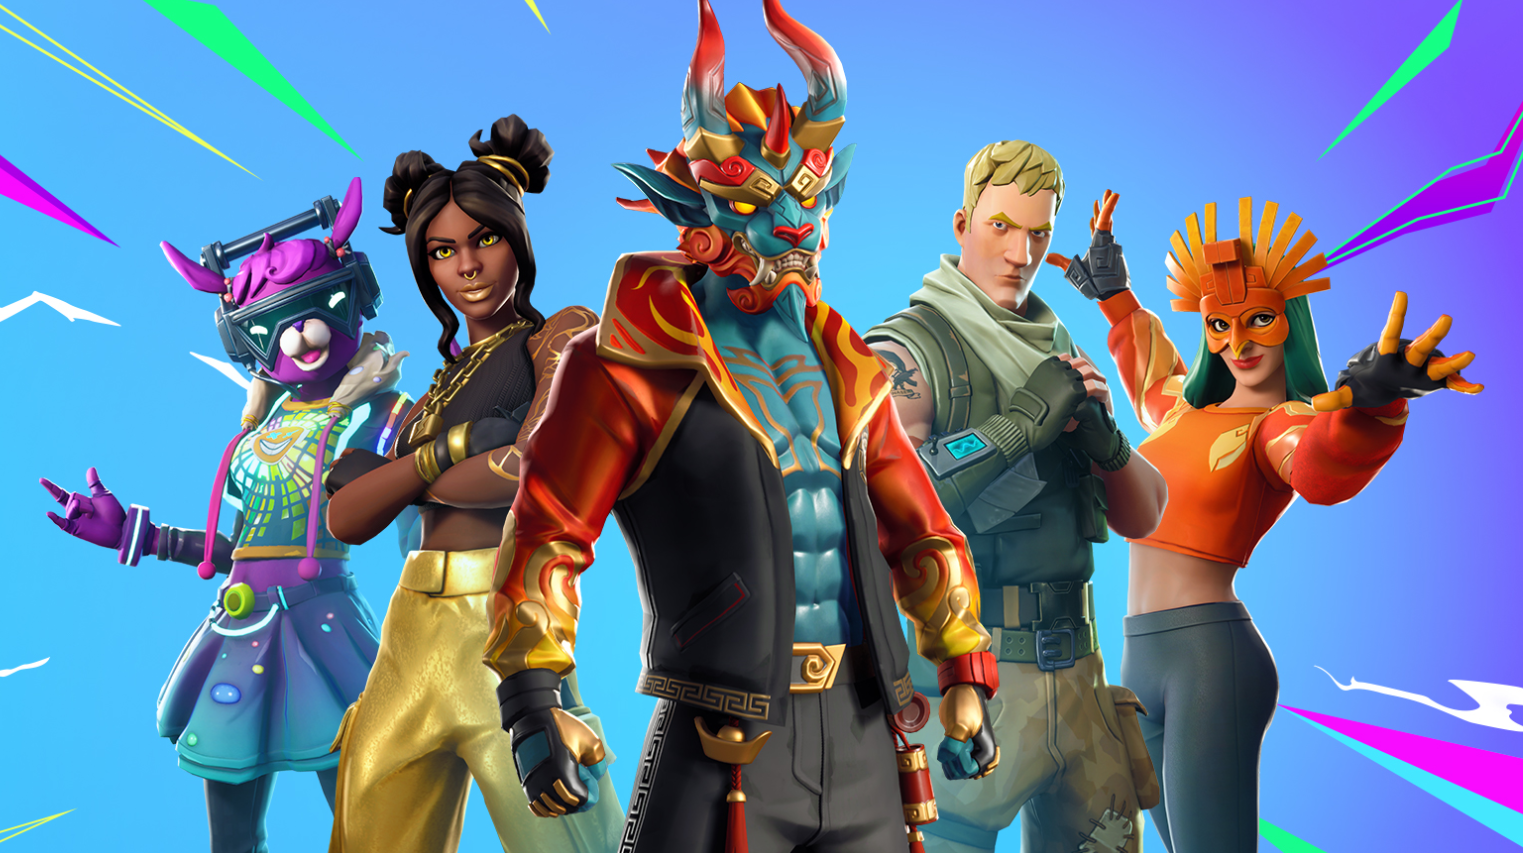 Video Of Odd Behaviour In Fortnite Match Leads To Accusations That Pro Was Cheating